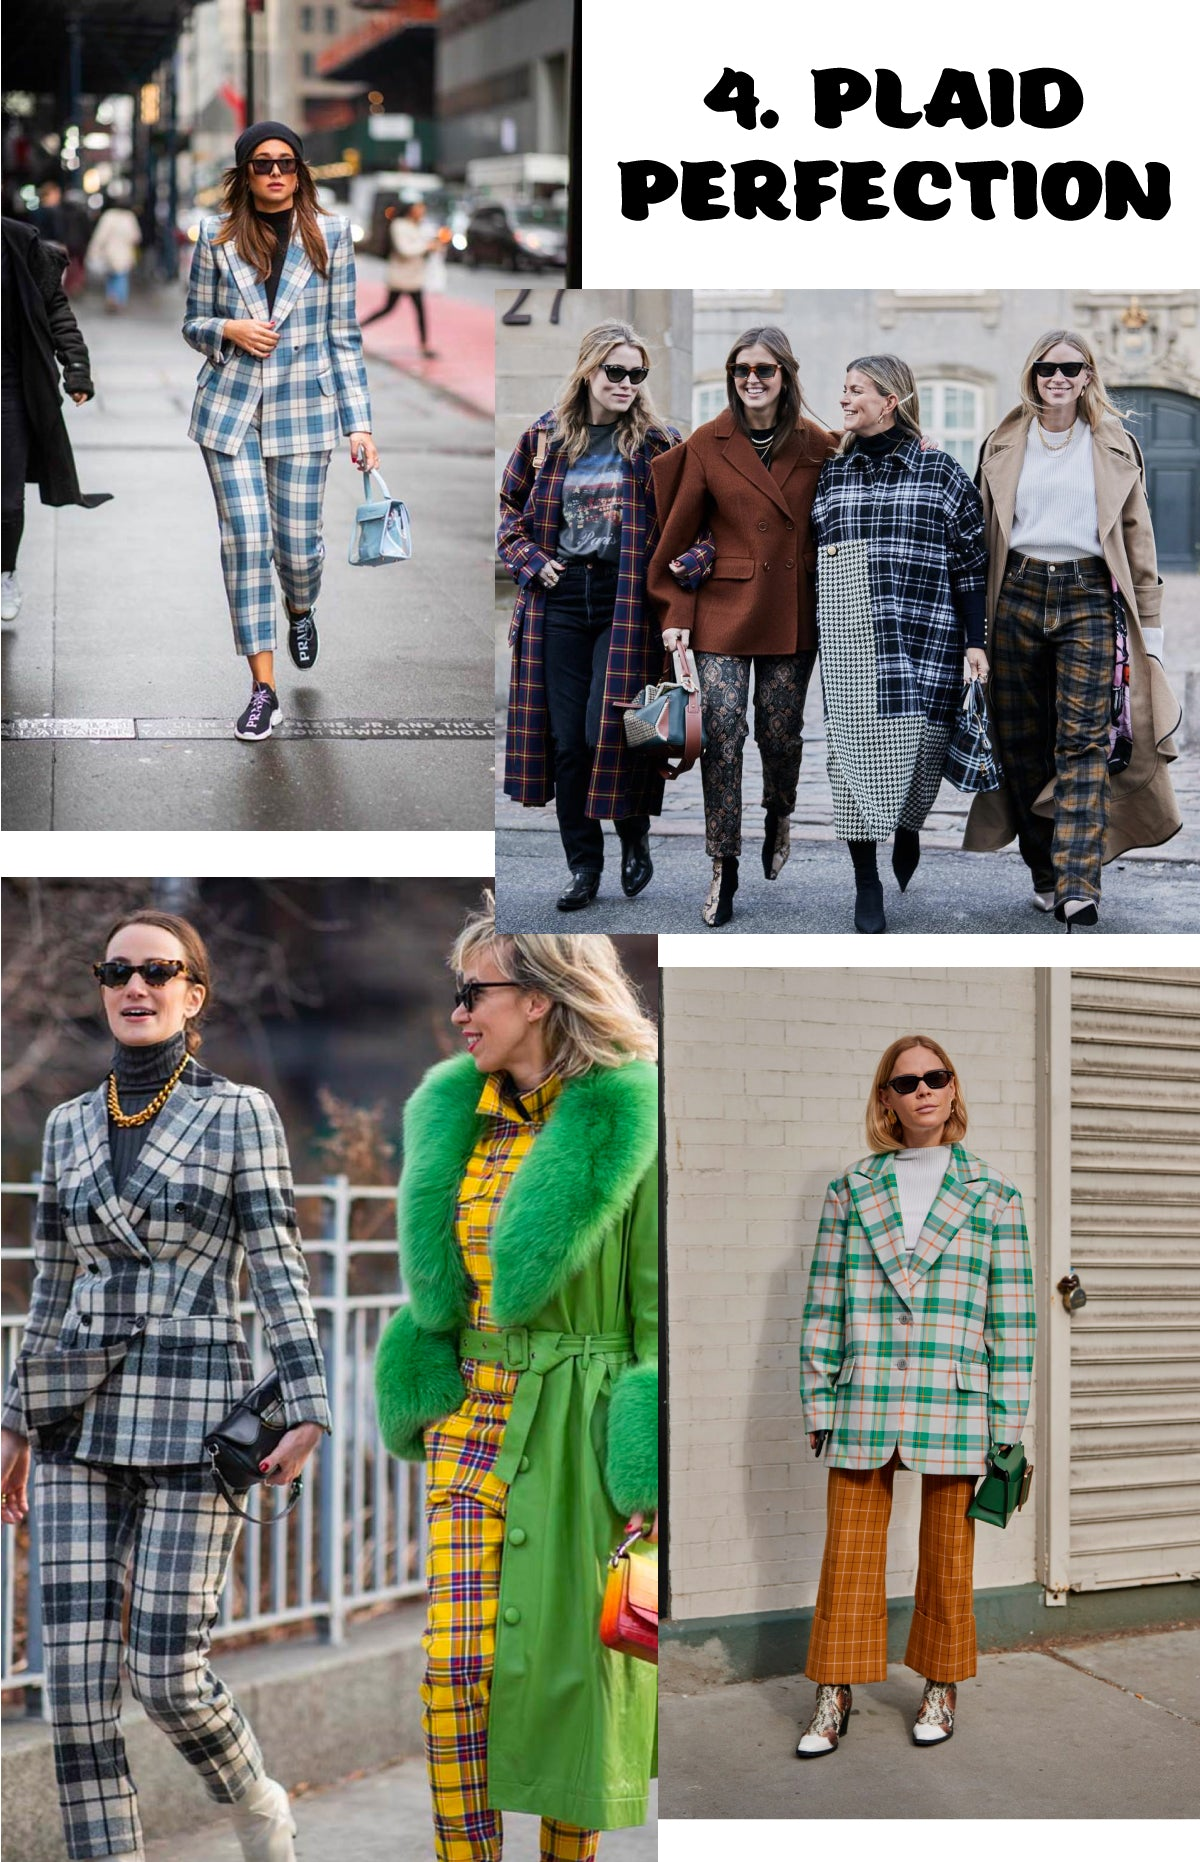 Plaid Perfection NYFW Trend Report 2019